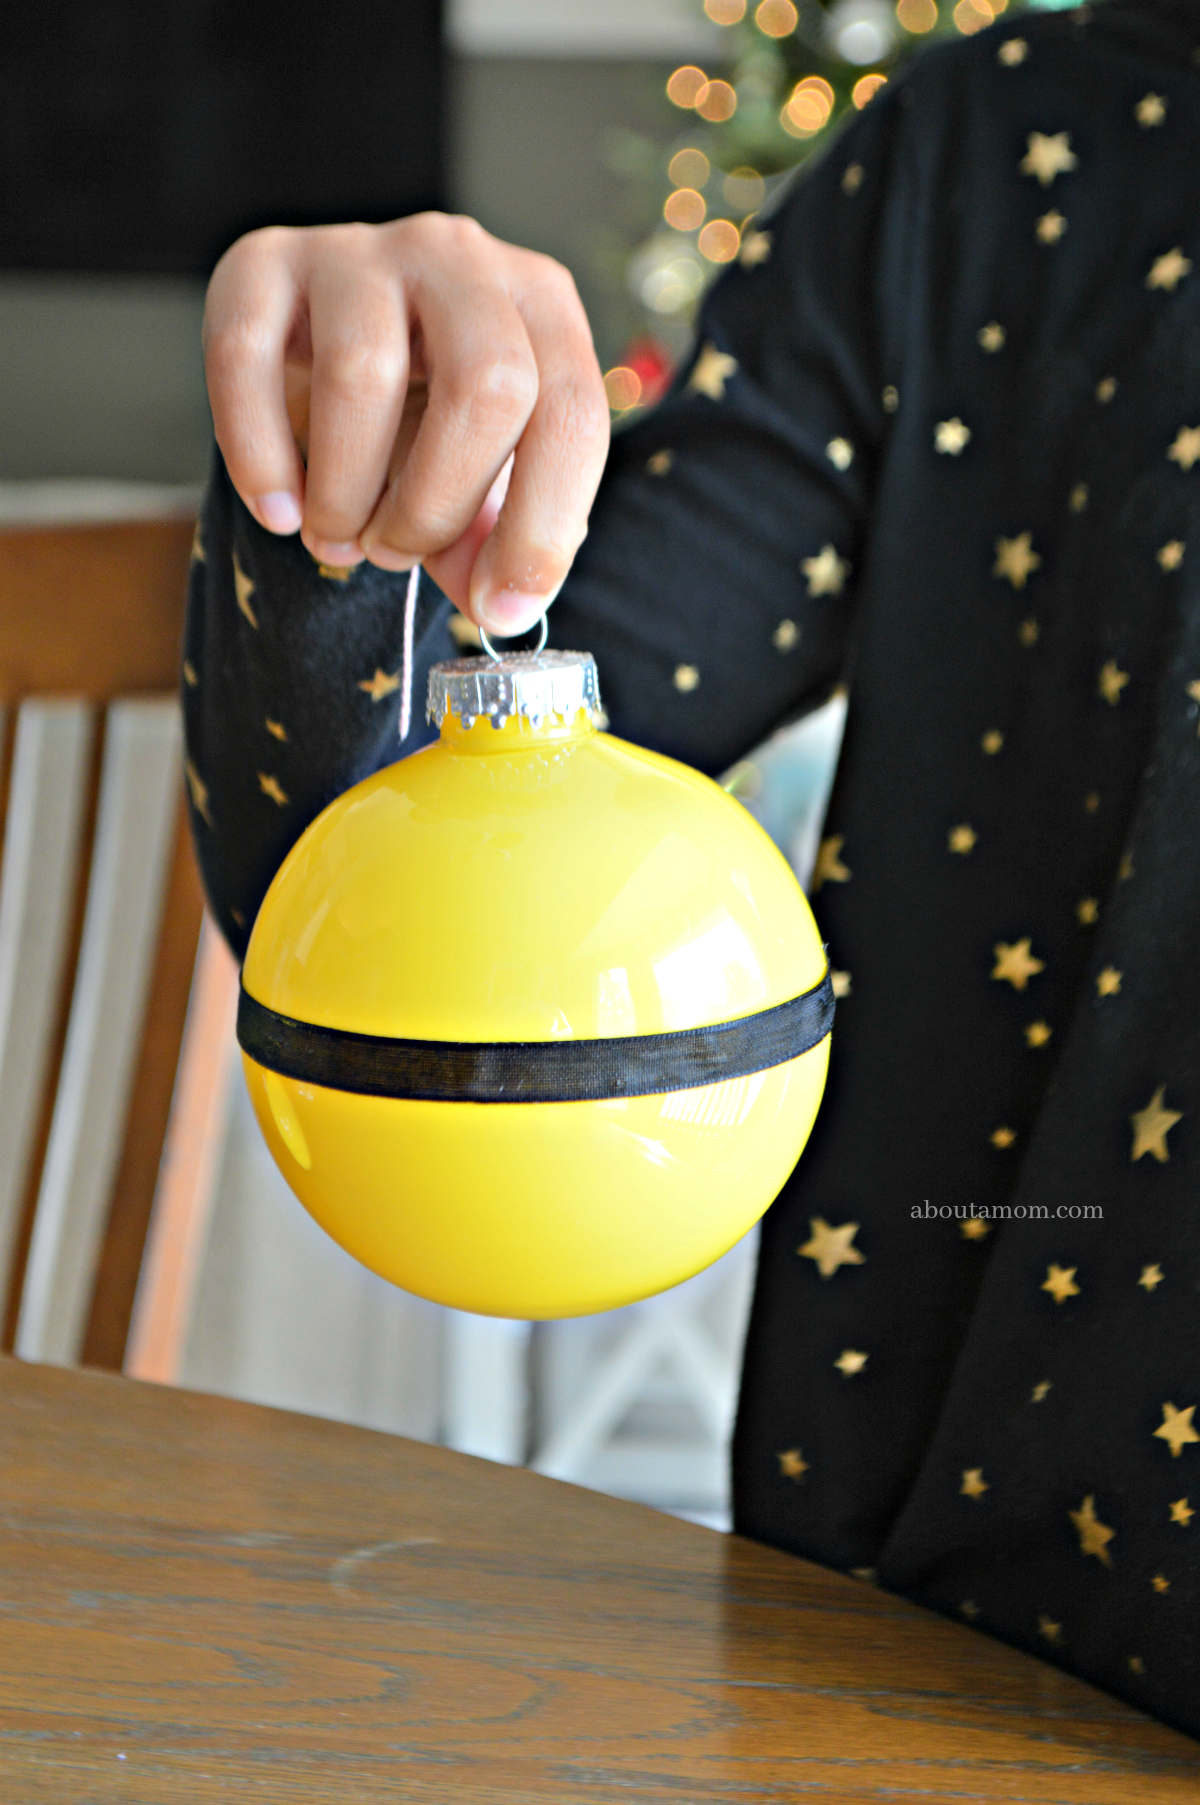 Plastic ball ornaments are used to make these DIY Minion ornaments that are a whole lot of fun and pretty easy to make. A Minion ornament that's perfect for Despicable Me fans young and old alike.